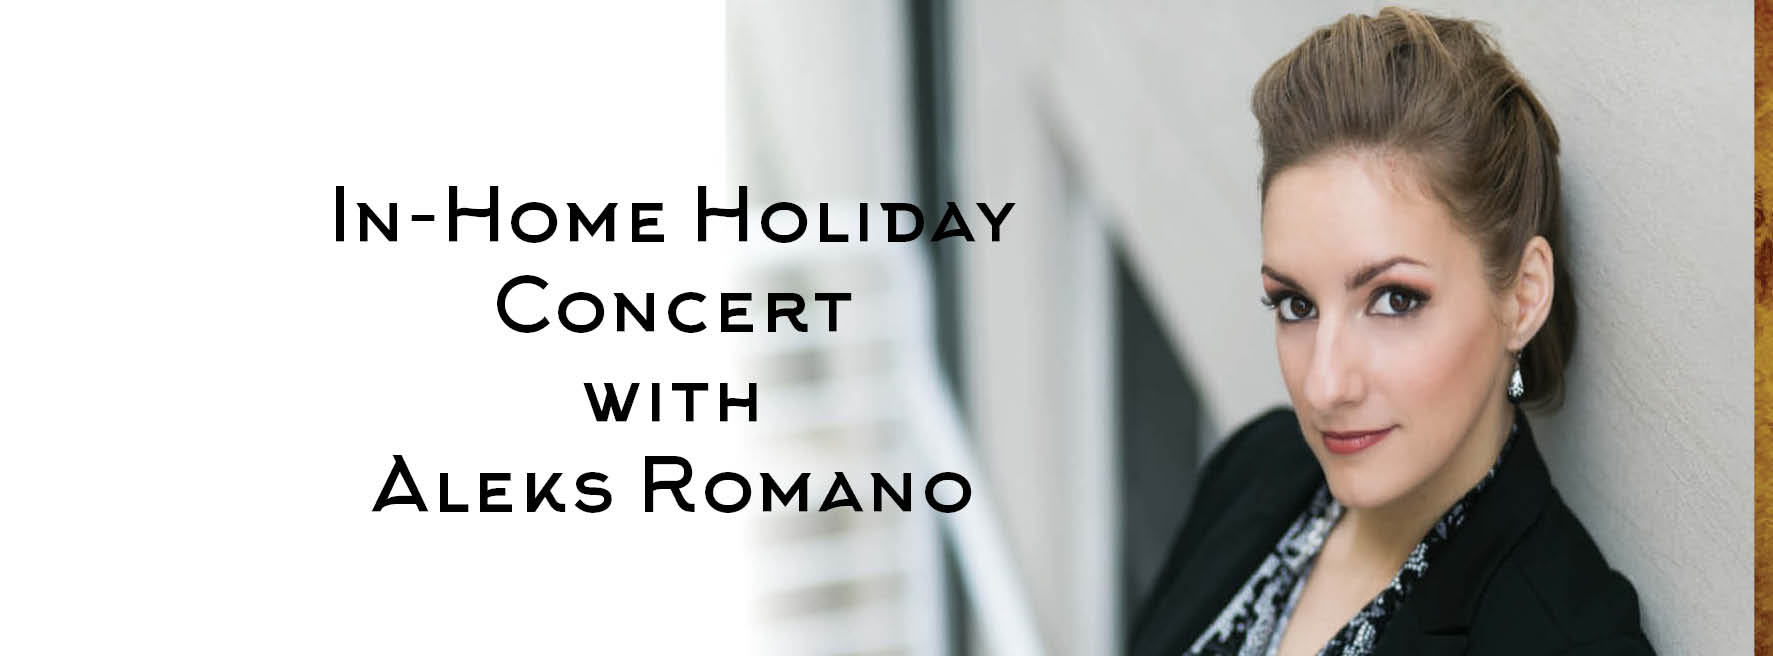 In-Home Holiday Concert